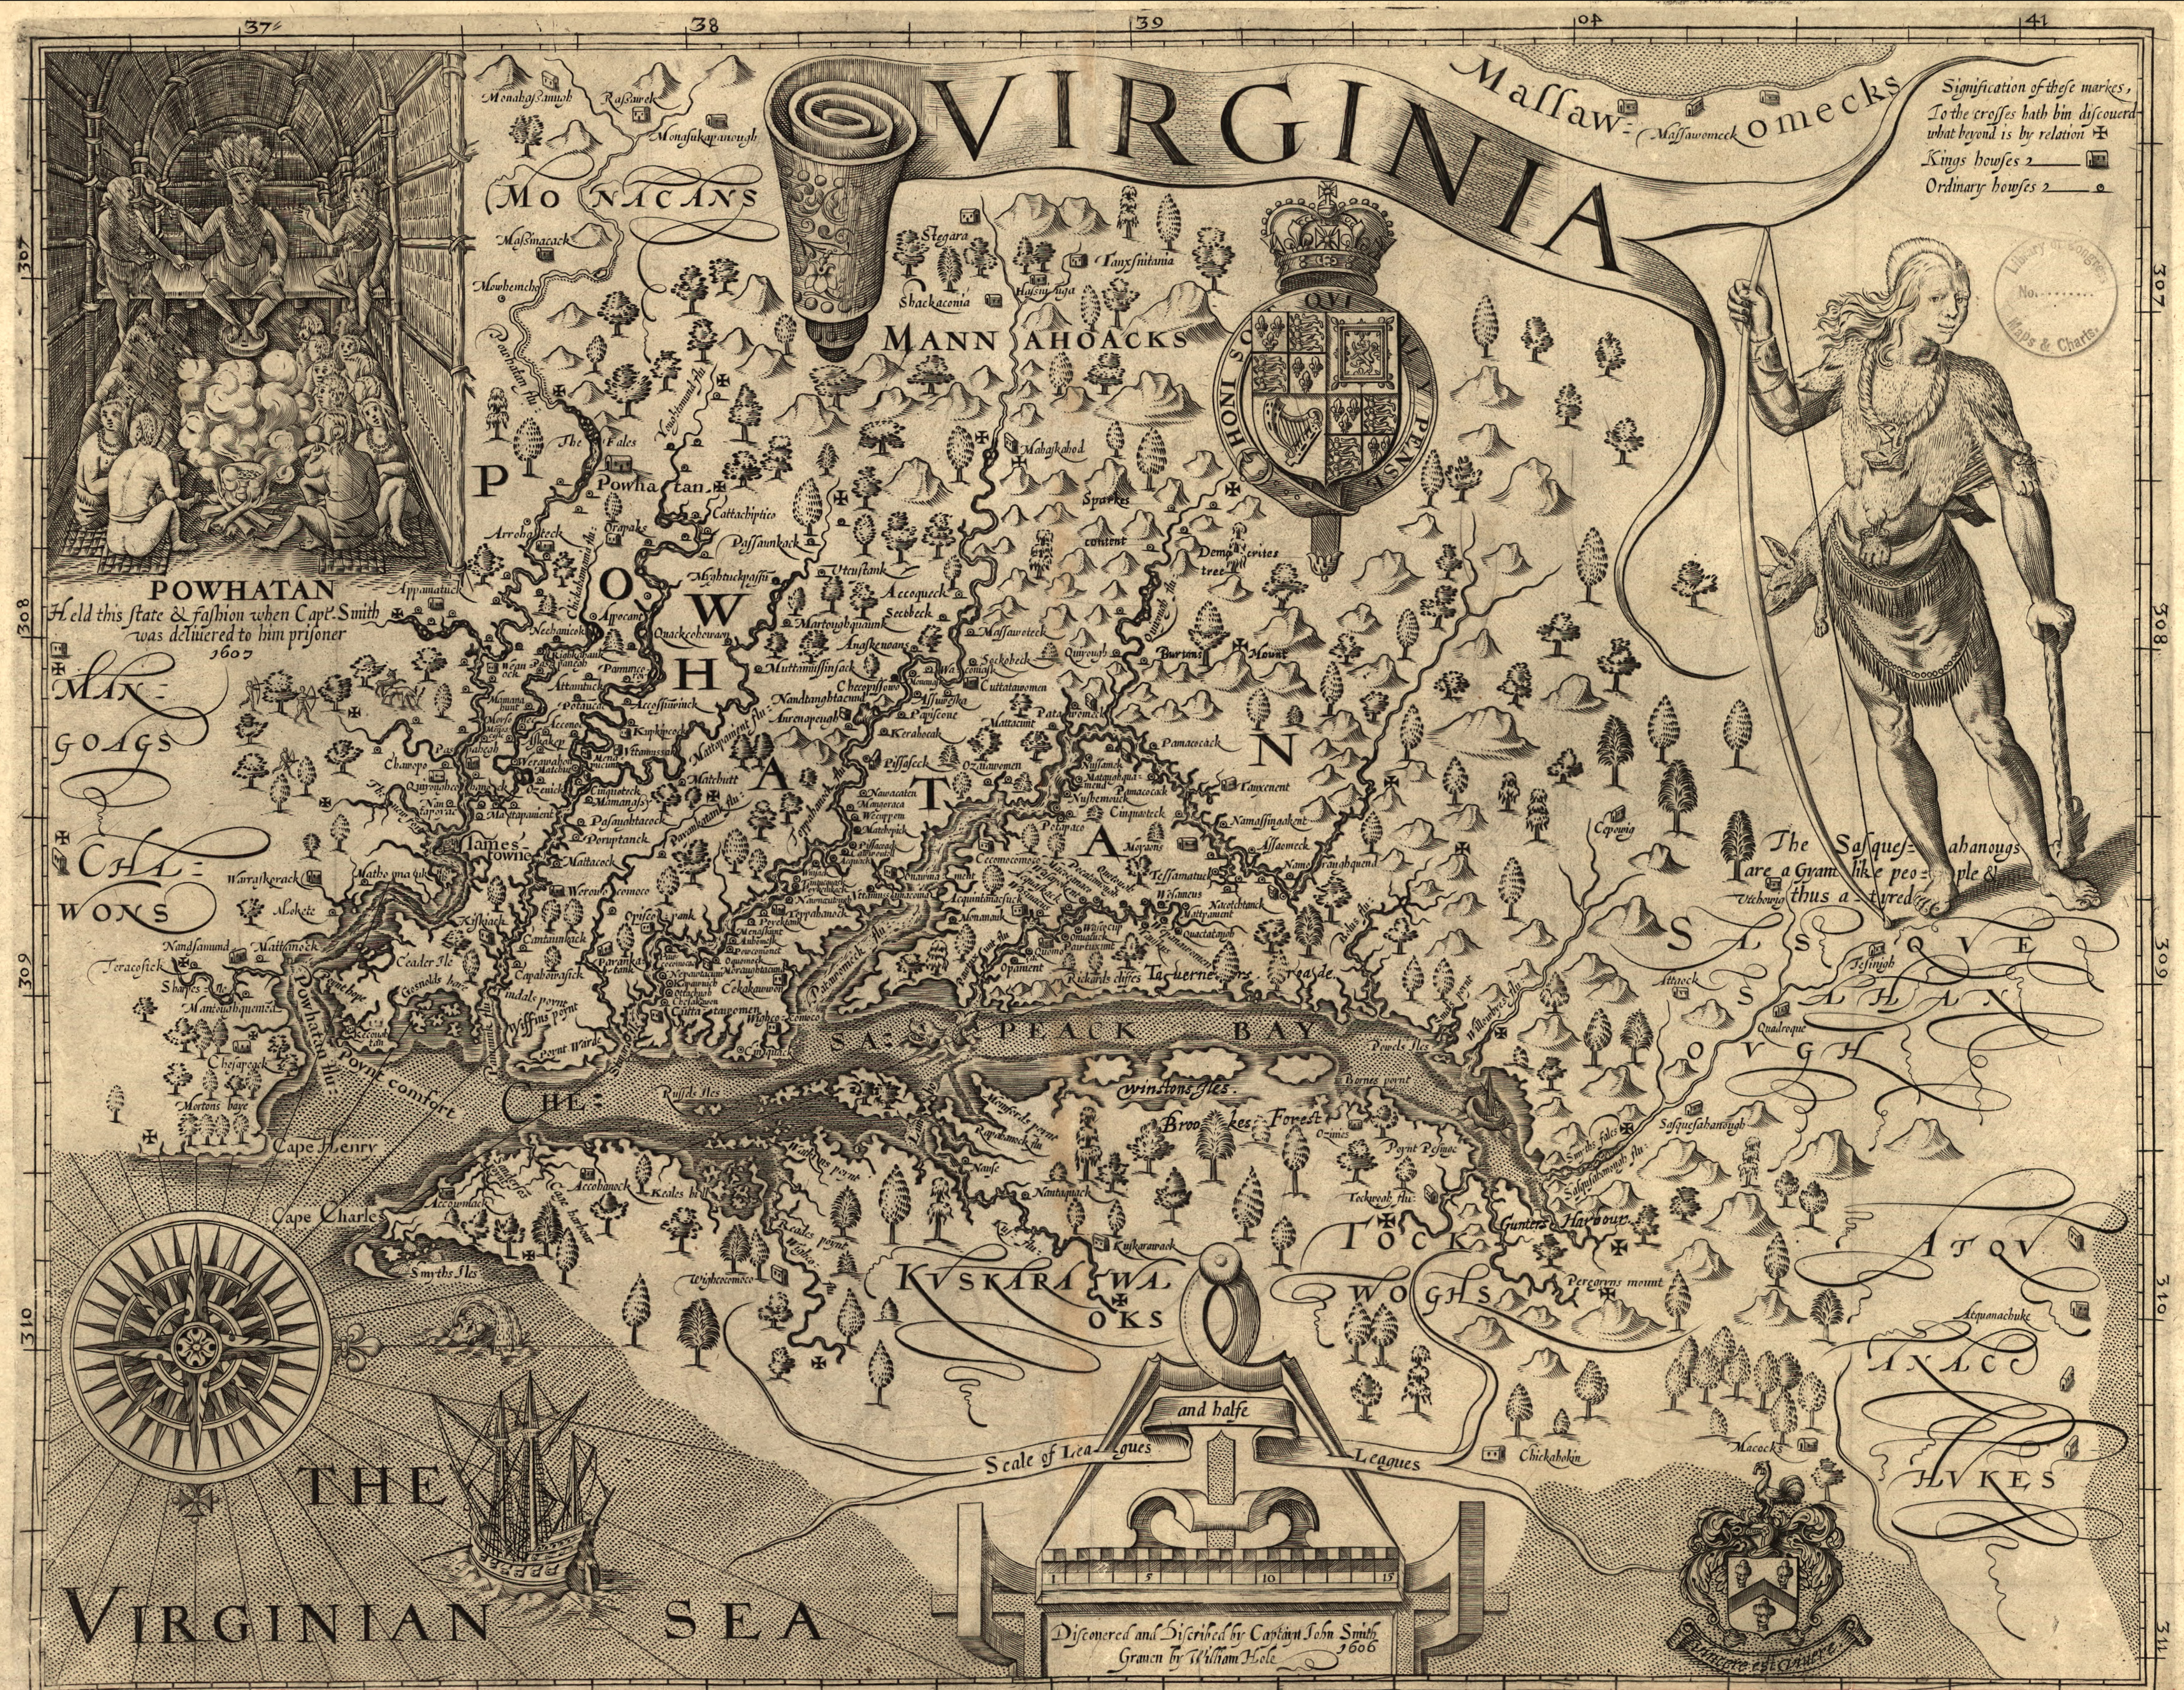 This is one of the first European maps of Virginia made by Captain John Smith who settled in Jamestown in 1607.